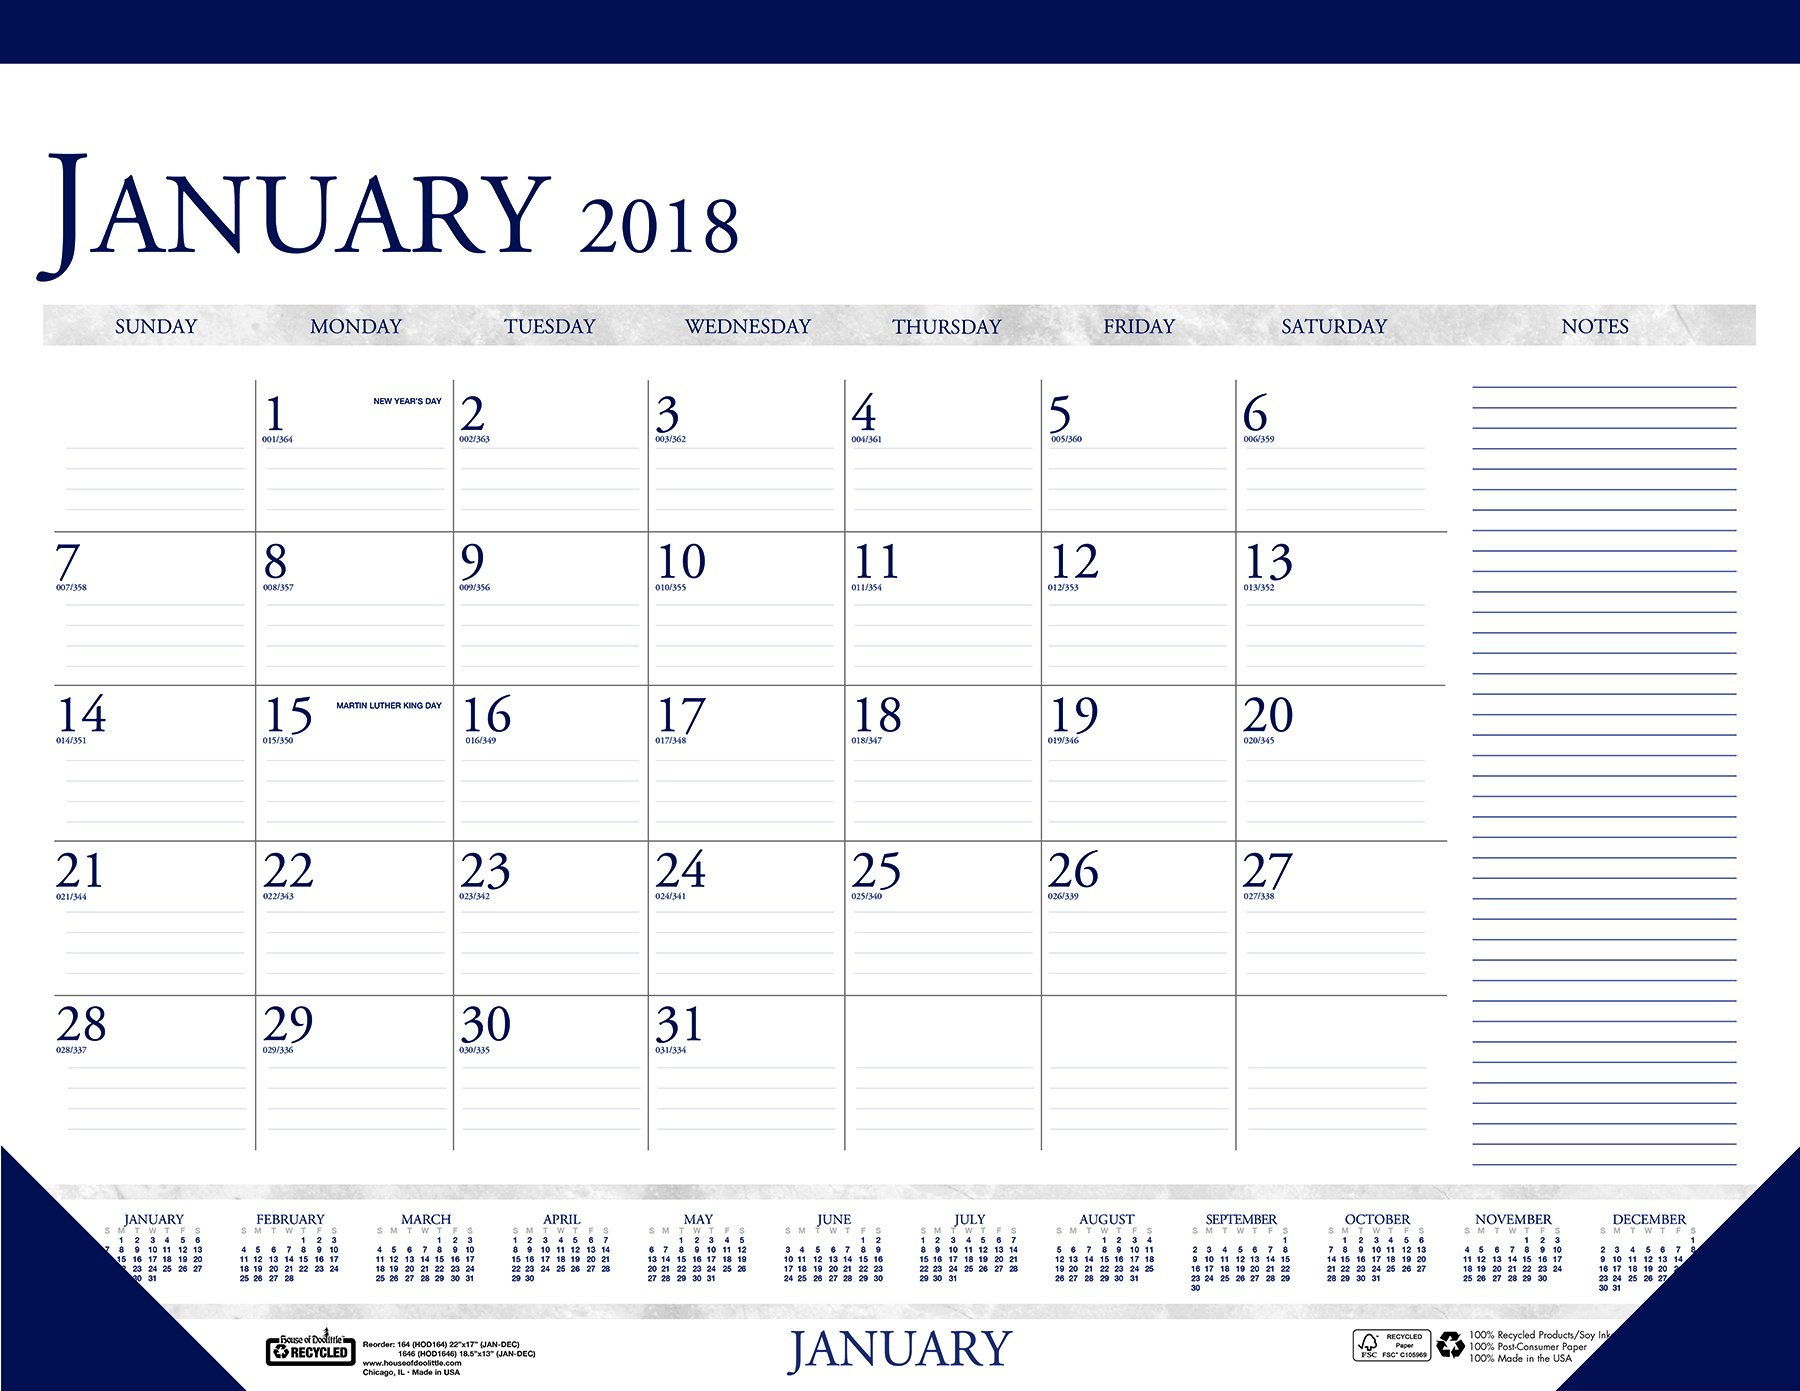 House of Doolittle 2018 Monthly Desk Pad Calendar, Classic with Notes Section, 22 x 17 Inches, January - December (HOD164-18)